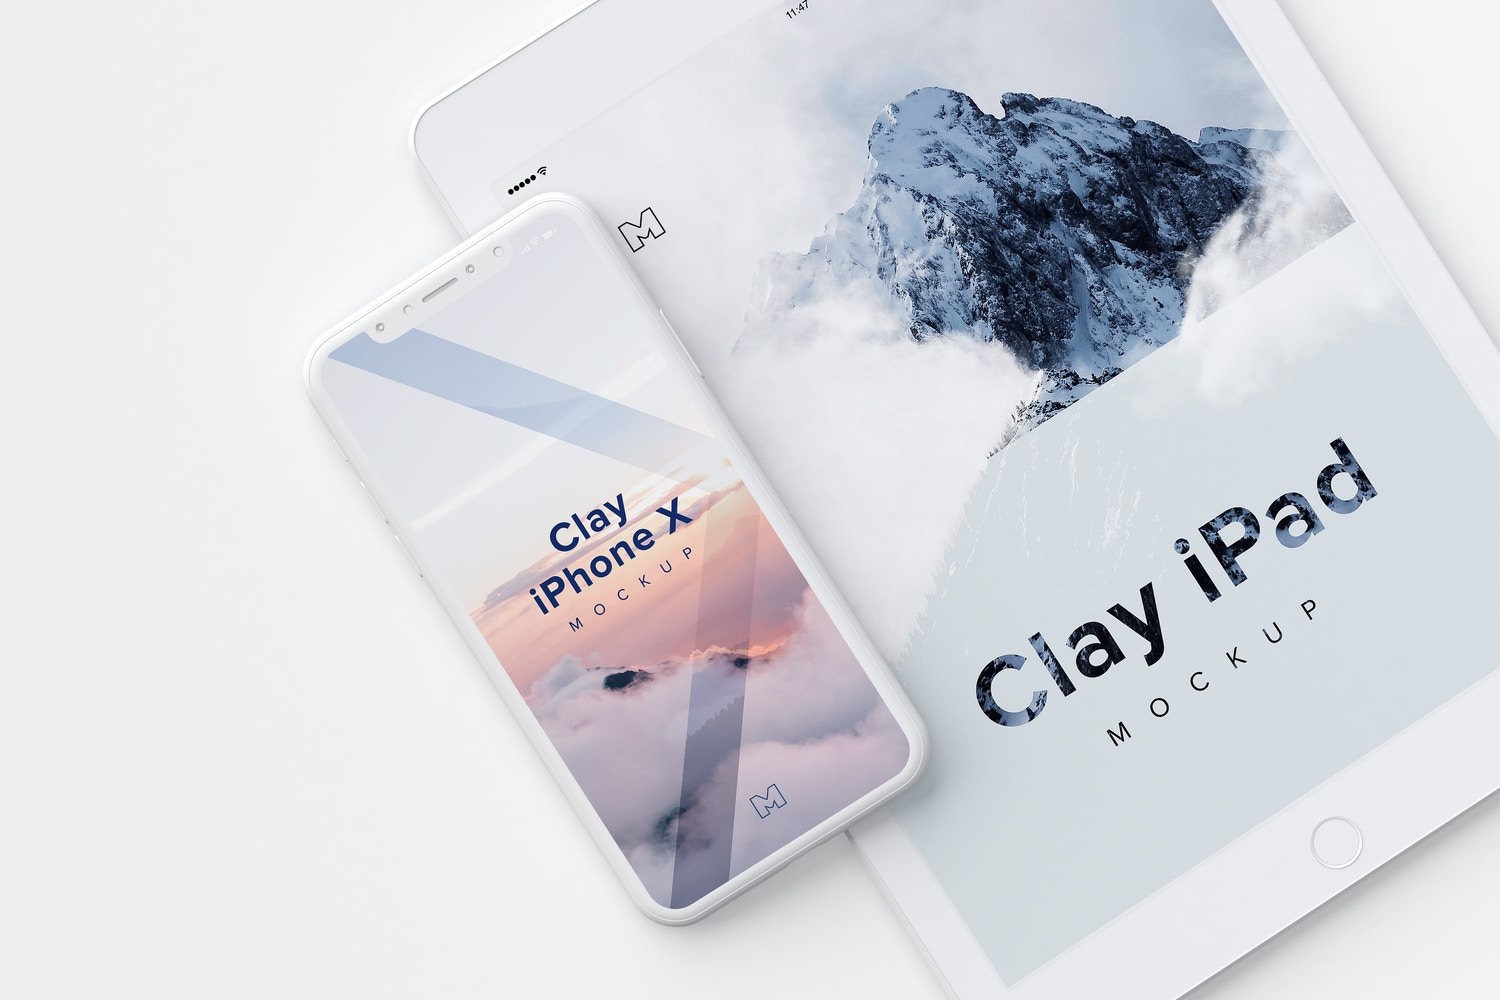 Clay iPhone X and iPad Mockup 01